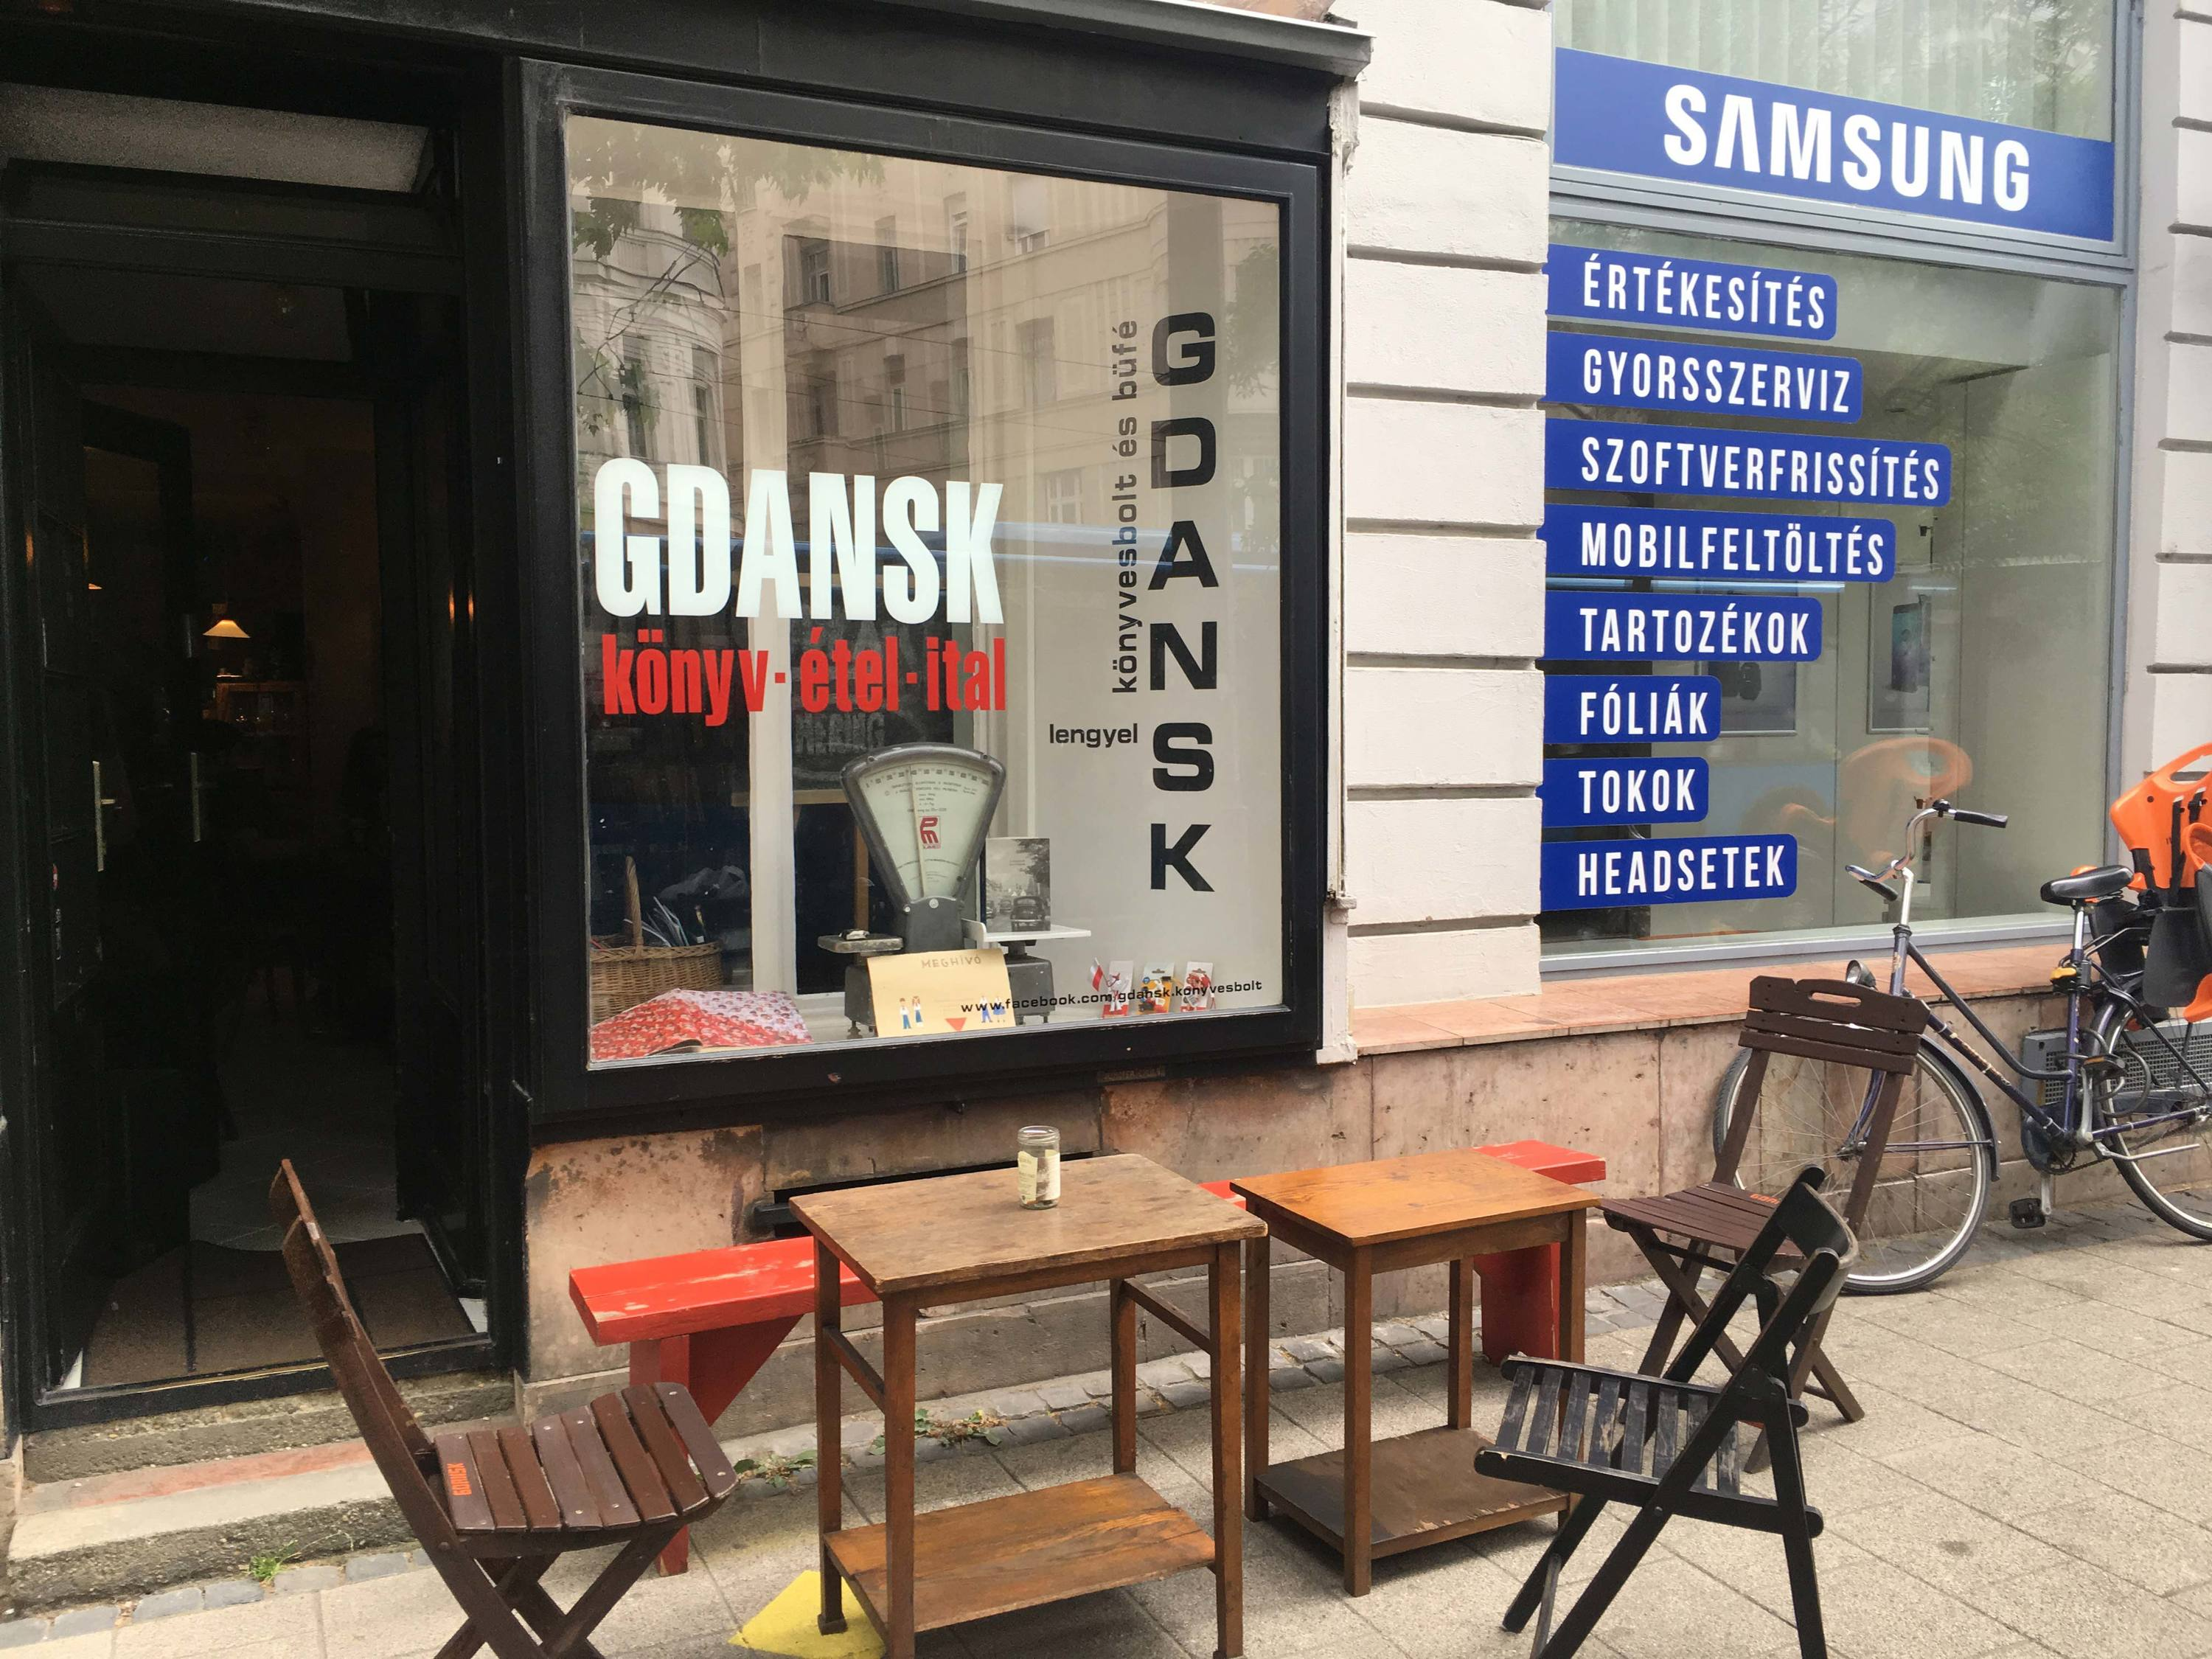 The exterior of Gdansk bar in Budapest